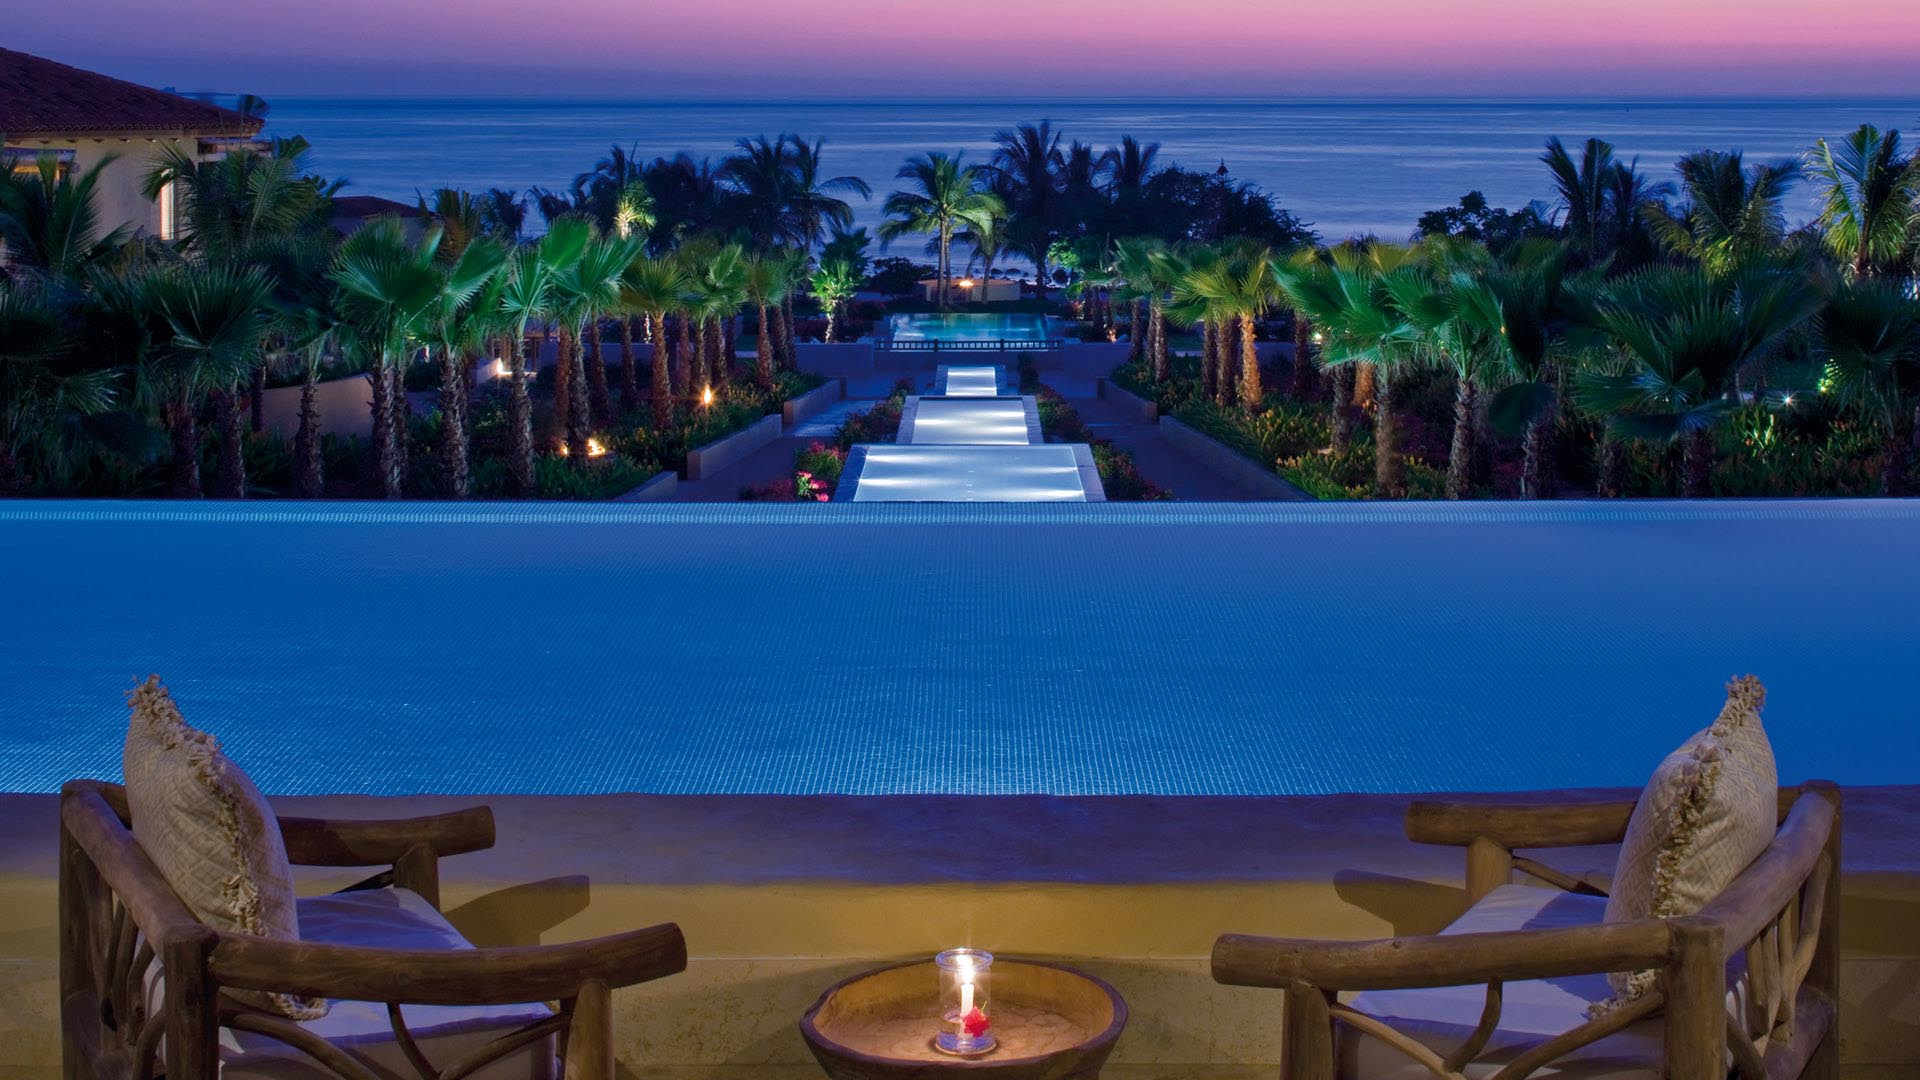 St. Regis Punta Mita Resort, Mexico